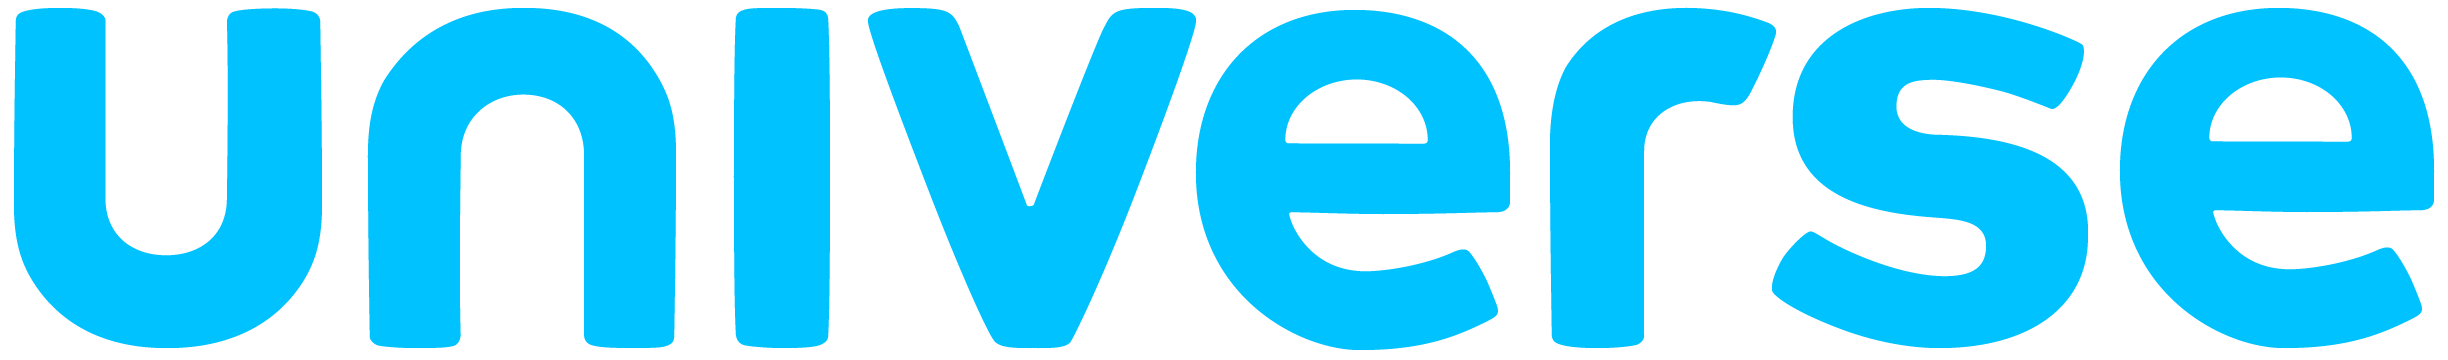 Blue_Wordmark.png